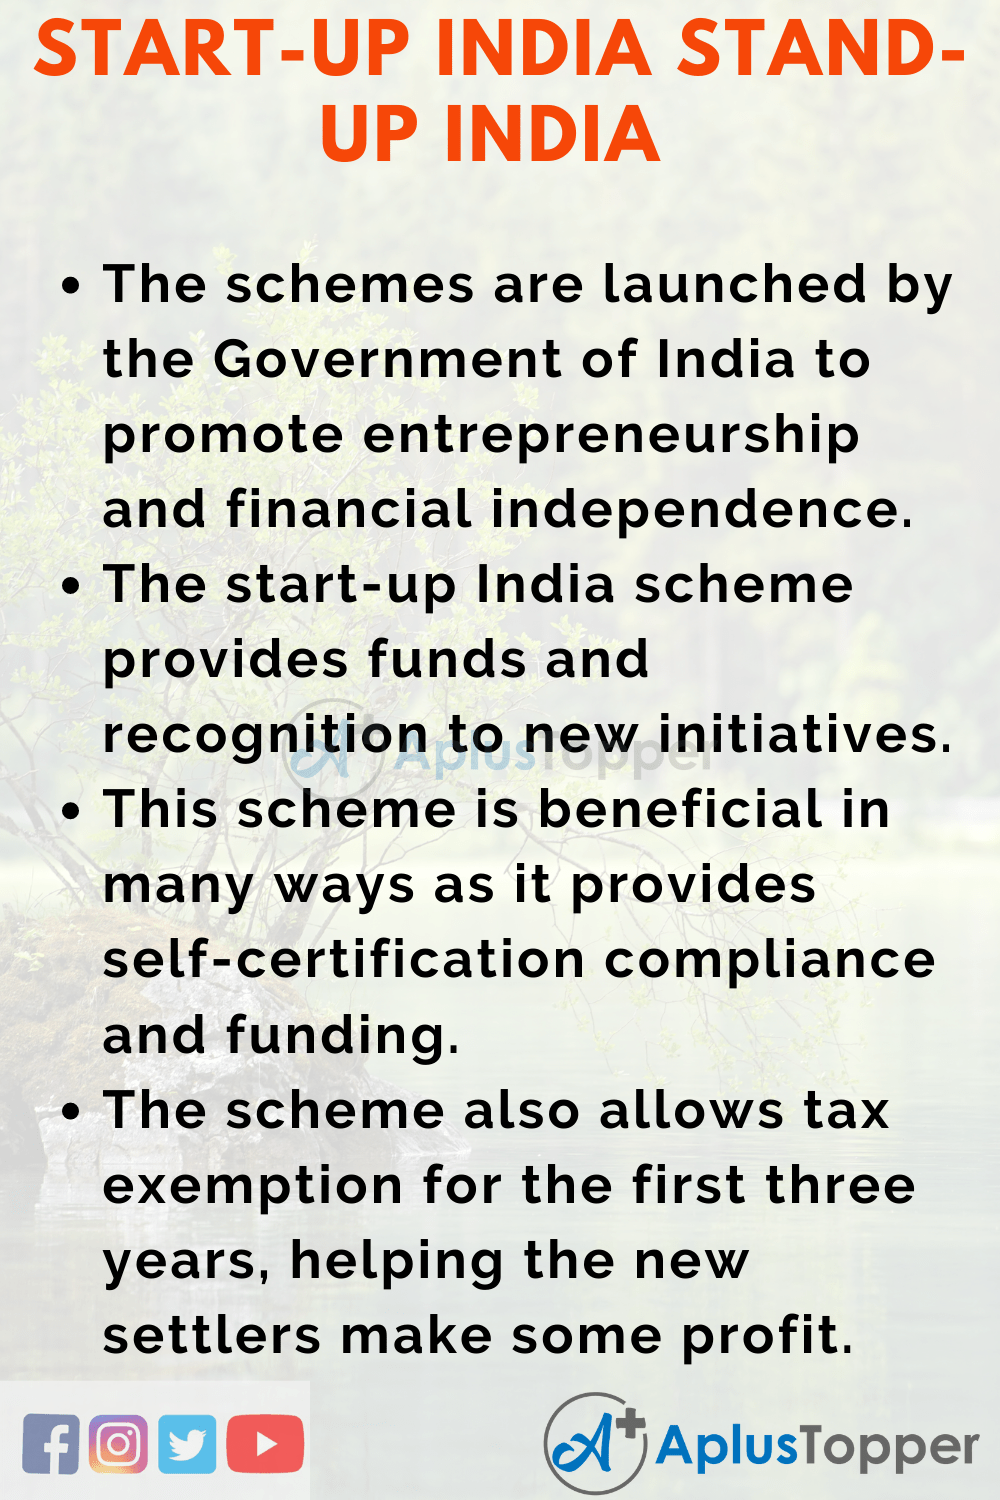 Essay about Start-Up India Stand-Up India